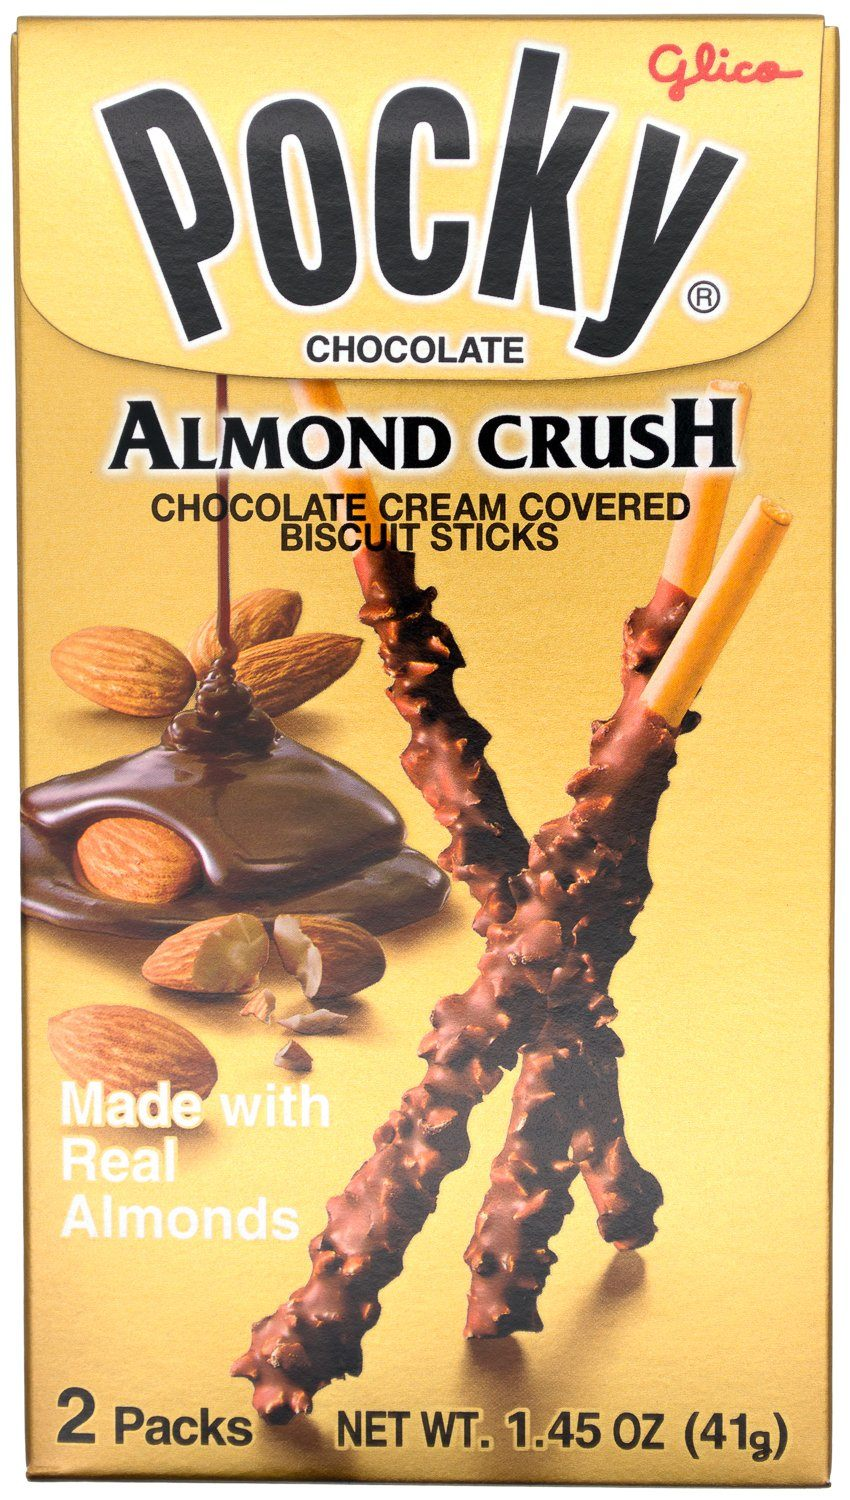 Pocky Cream Covered Biscuit Sticks Glico Almond Crush 1.45 Ounce